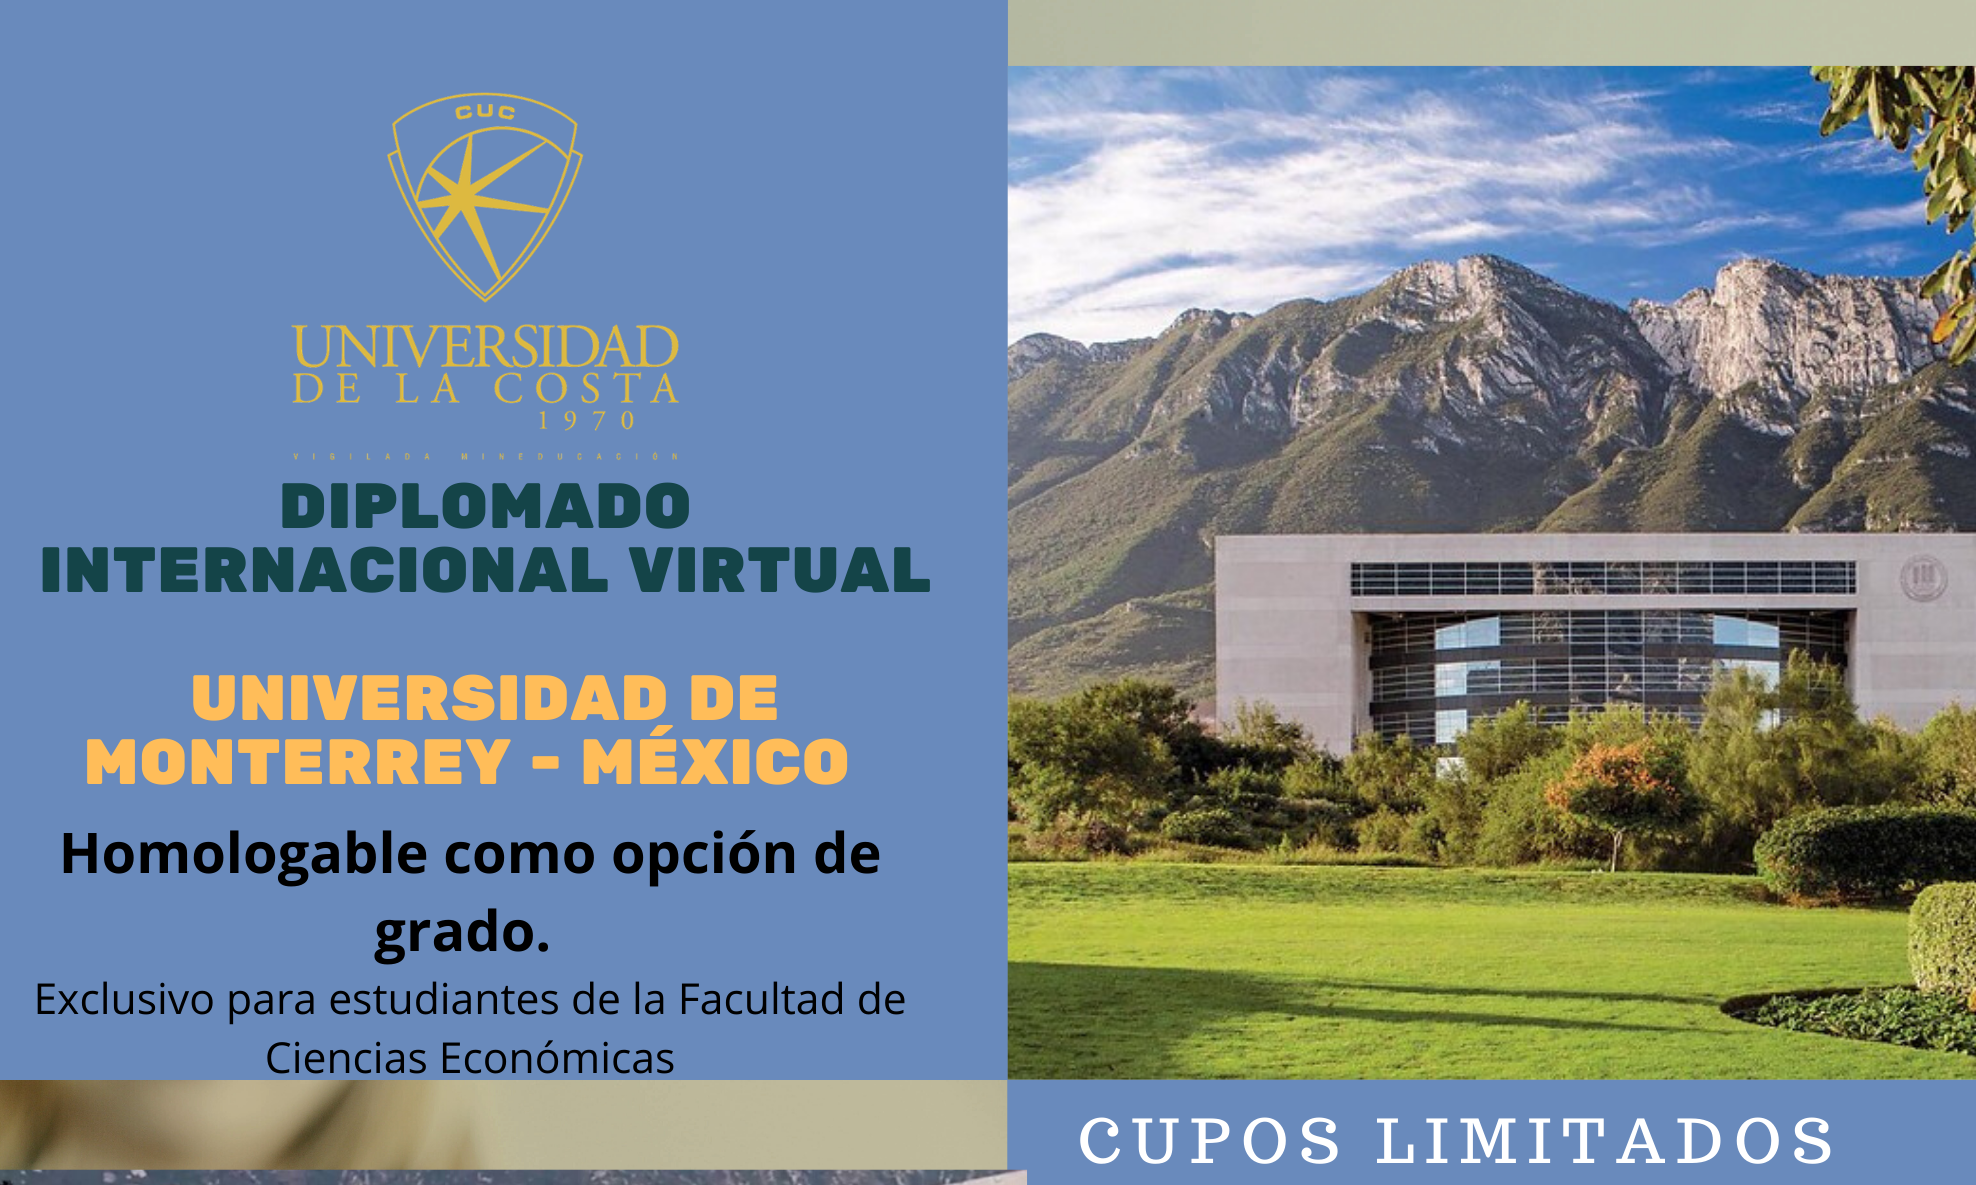 Diplomado internacional virtual en la Universidad de Monterrey